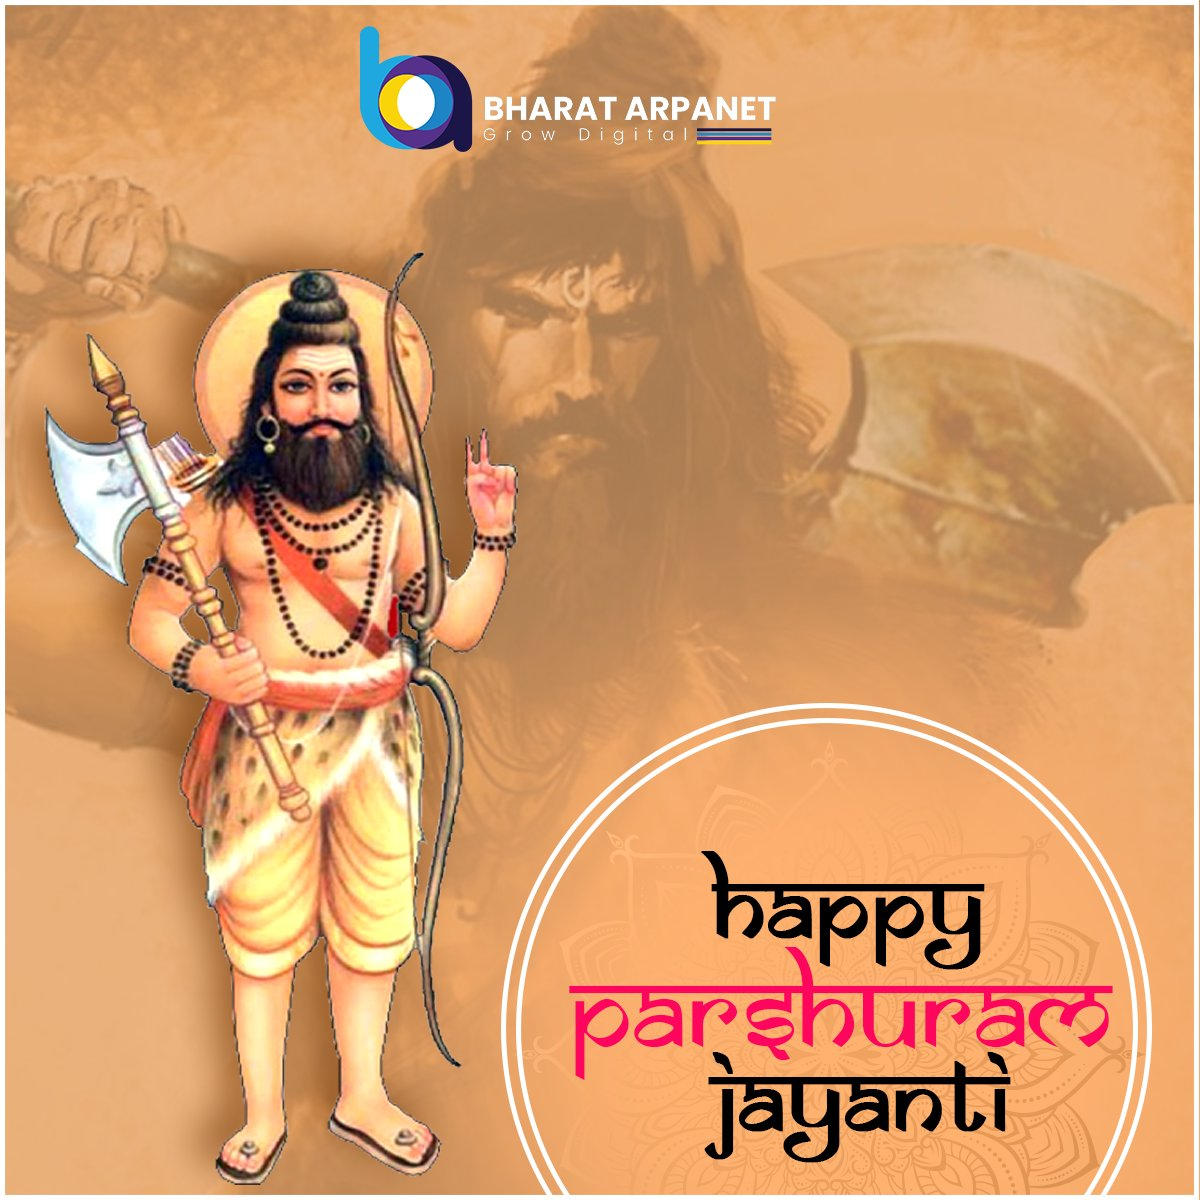 May Lord Parshuram bless you with power & courage and achievements.  #HappyParshuramJayanti #ParshuramJayanti2020 #ParshuramJayanti #ParshuramJanmotsav https://t.co/Ufoas1Pvm1